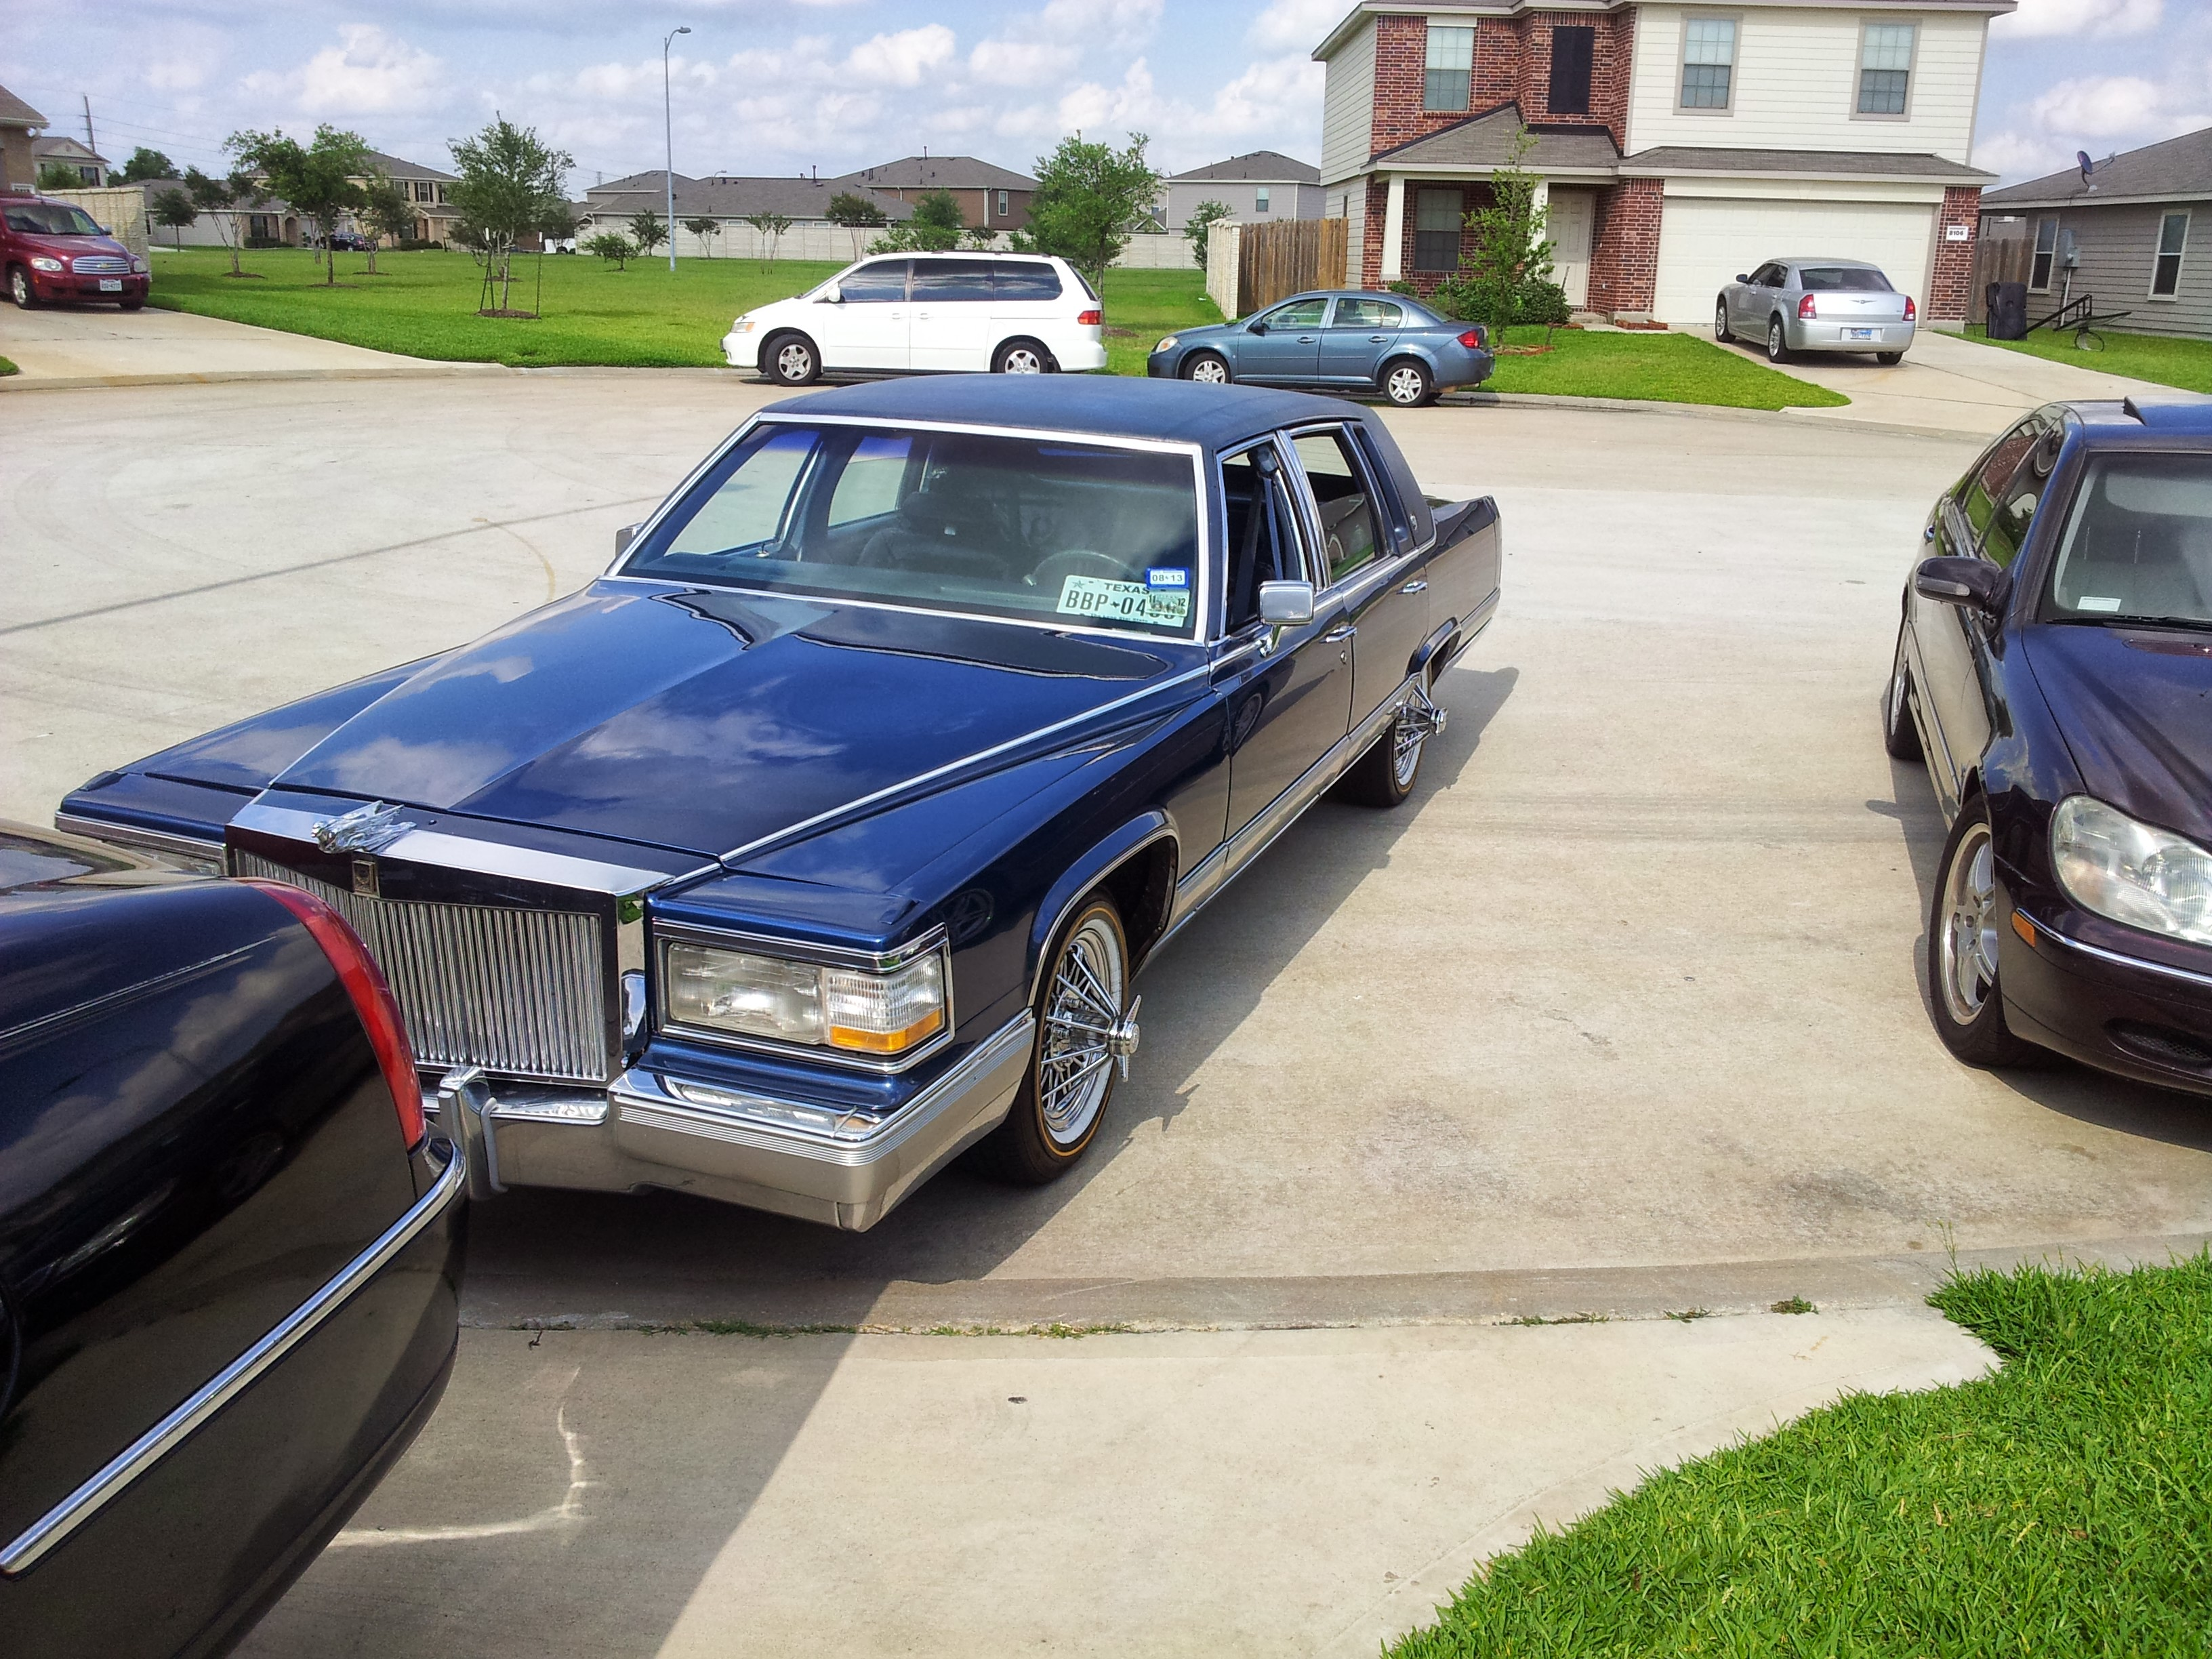 FLEETWOOD TRACEI's 1992 Cadillac Brougham